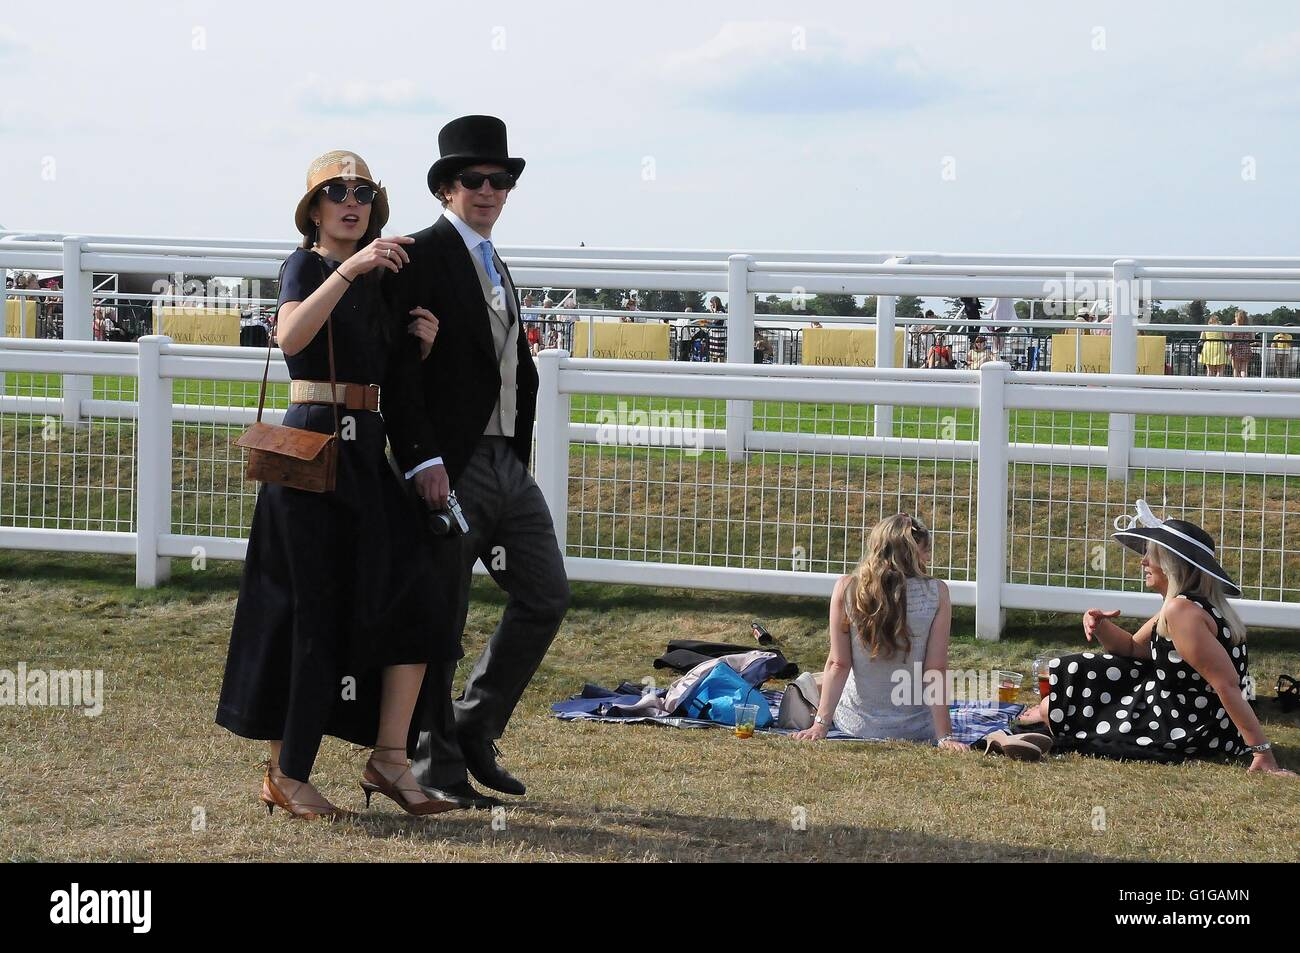 Romantic couple at 2015, Royal Ascot race meeting. - Stock Image